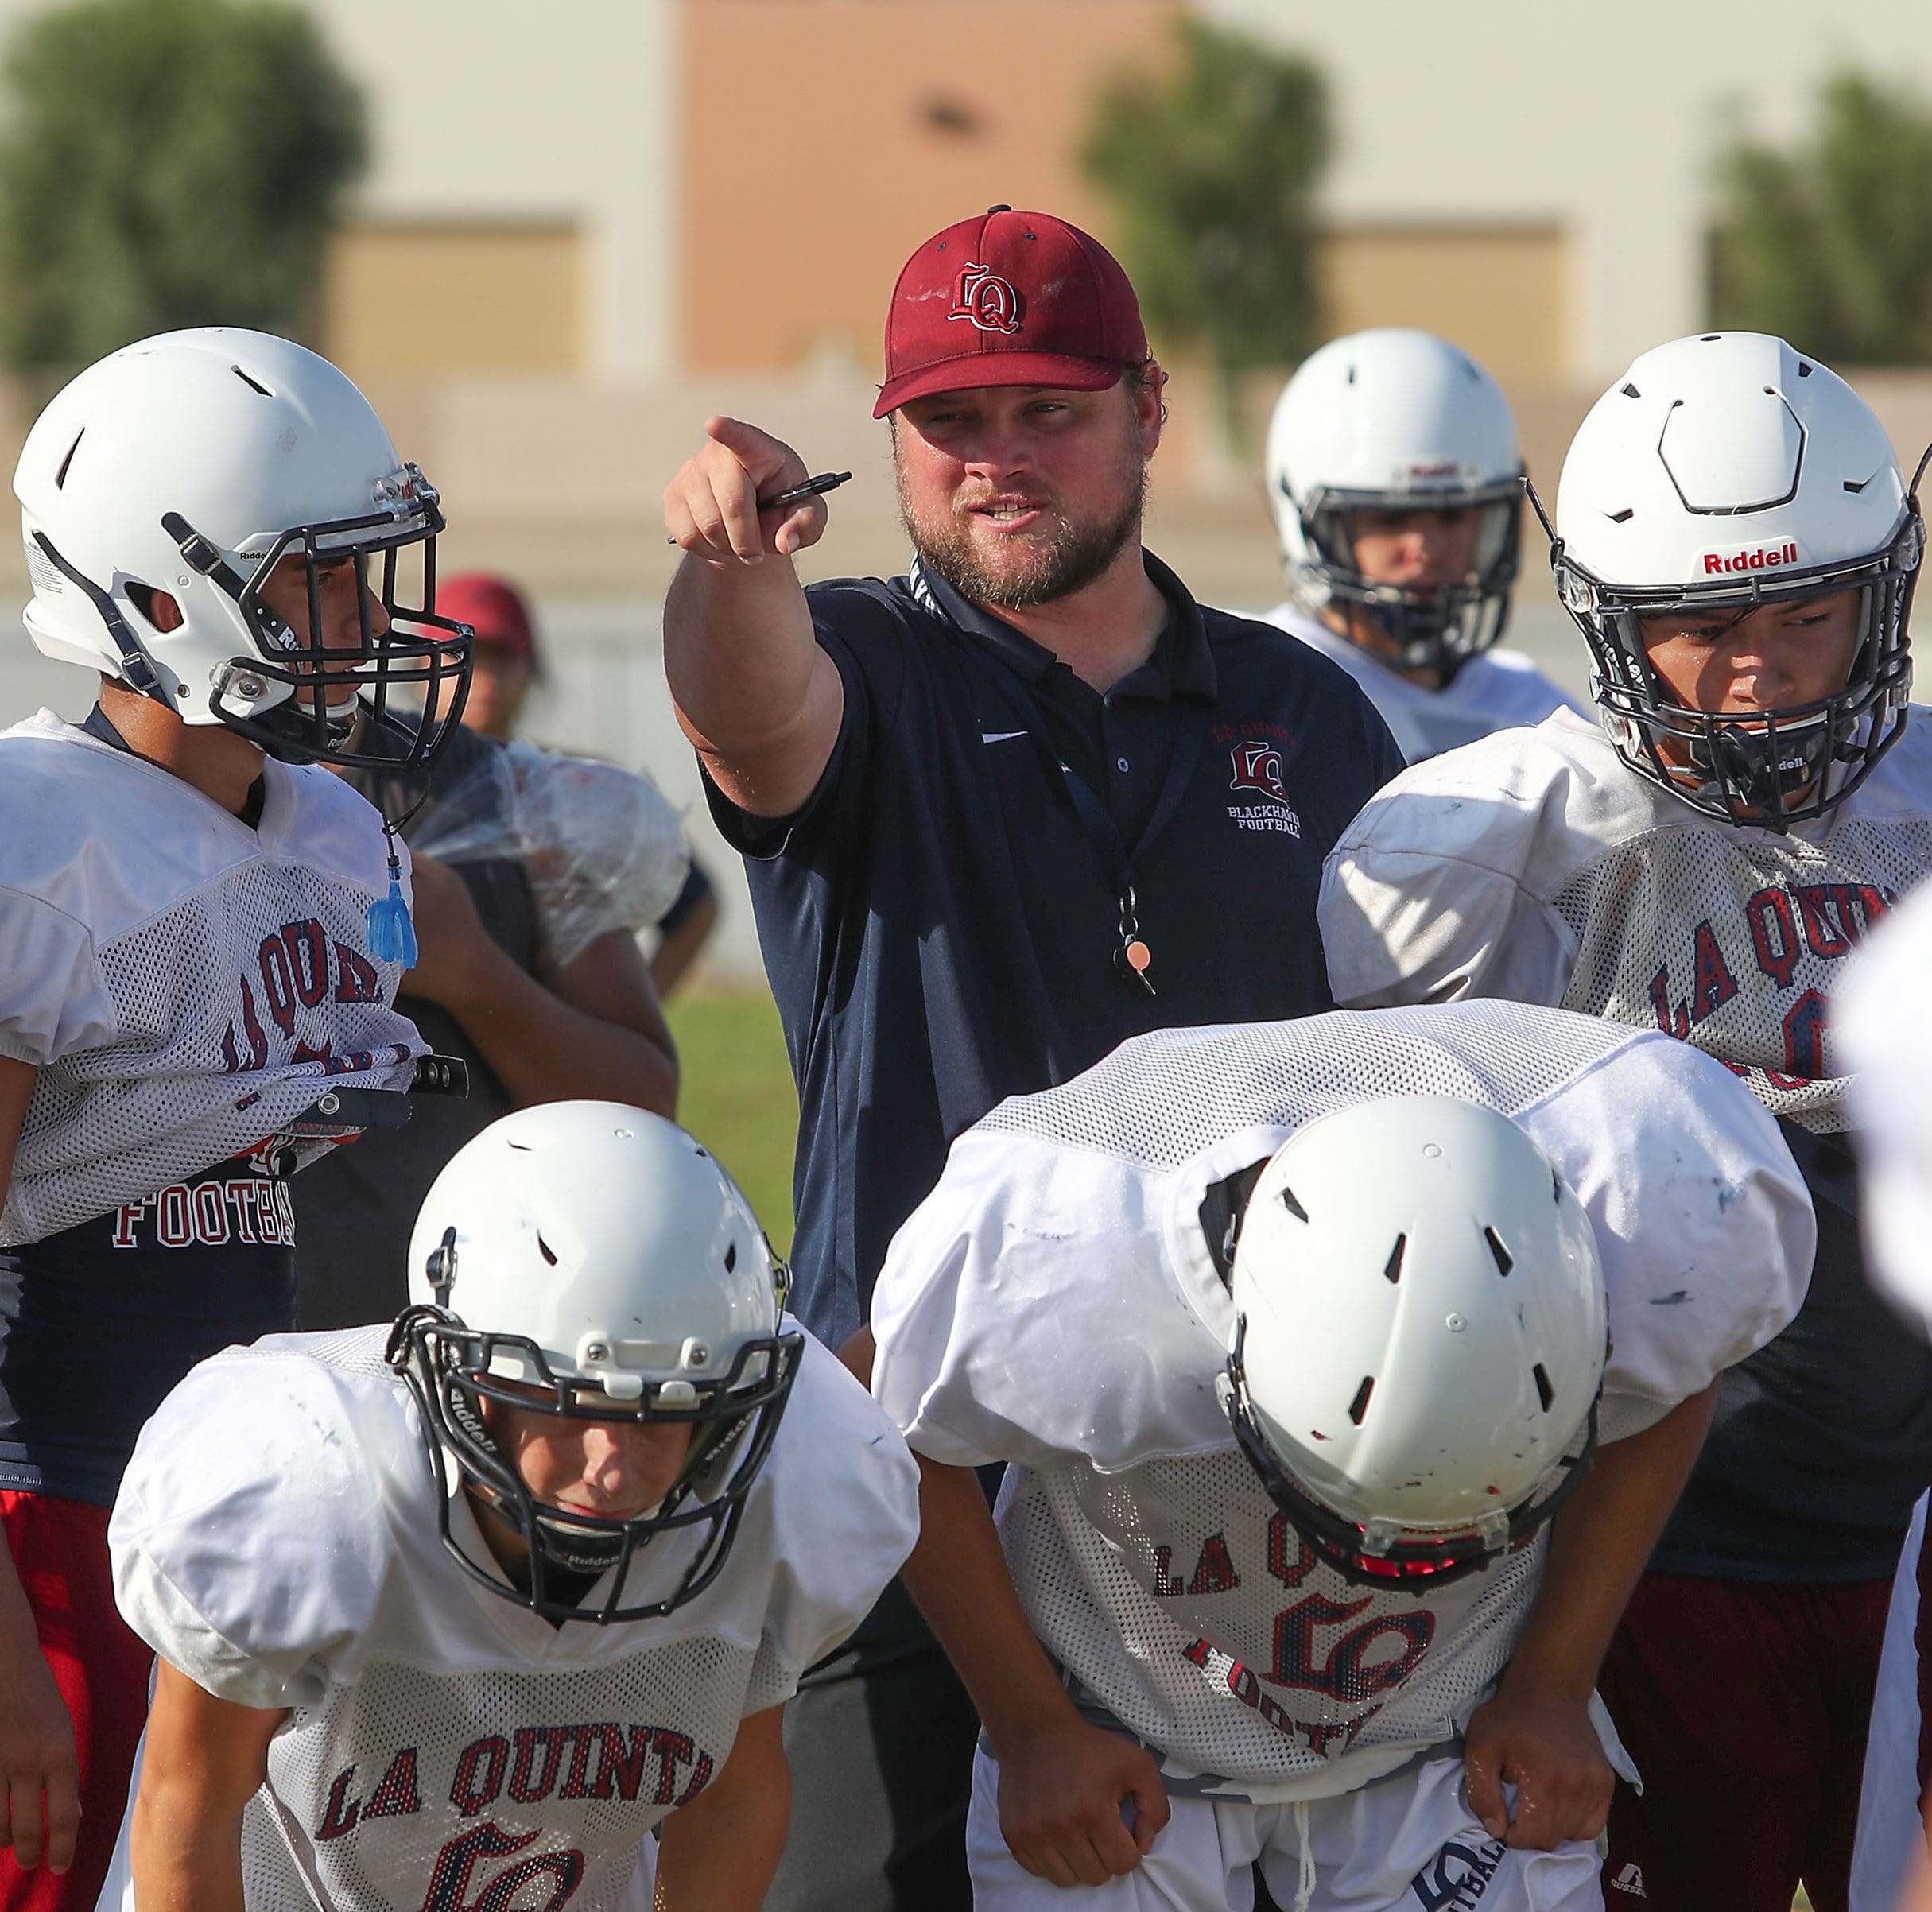 No more goose egg: La Quinta, new coach Patrick Rivenes roll to first win of  season